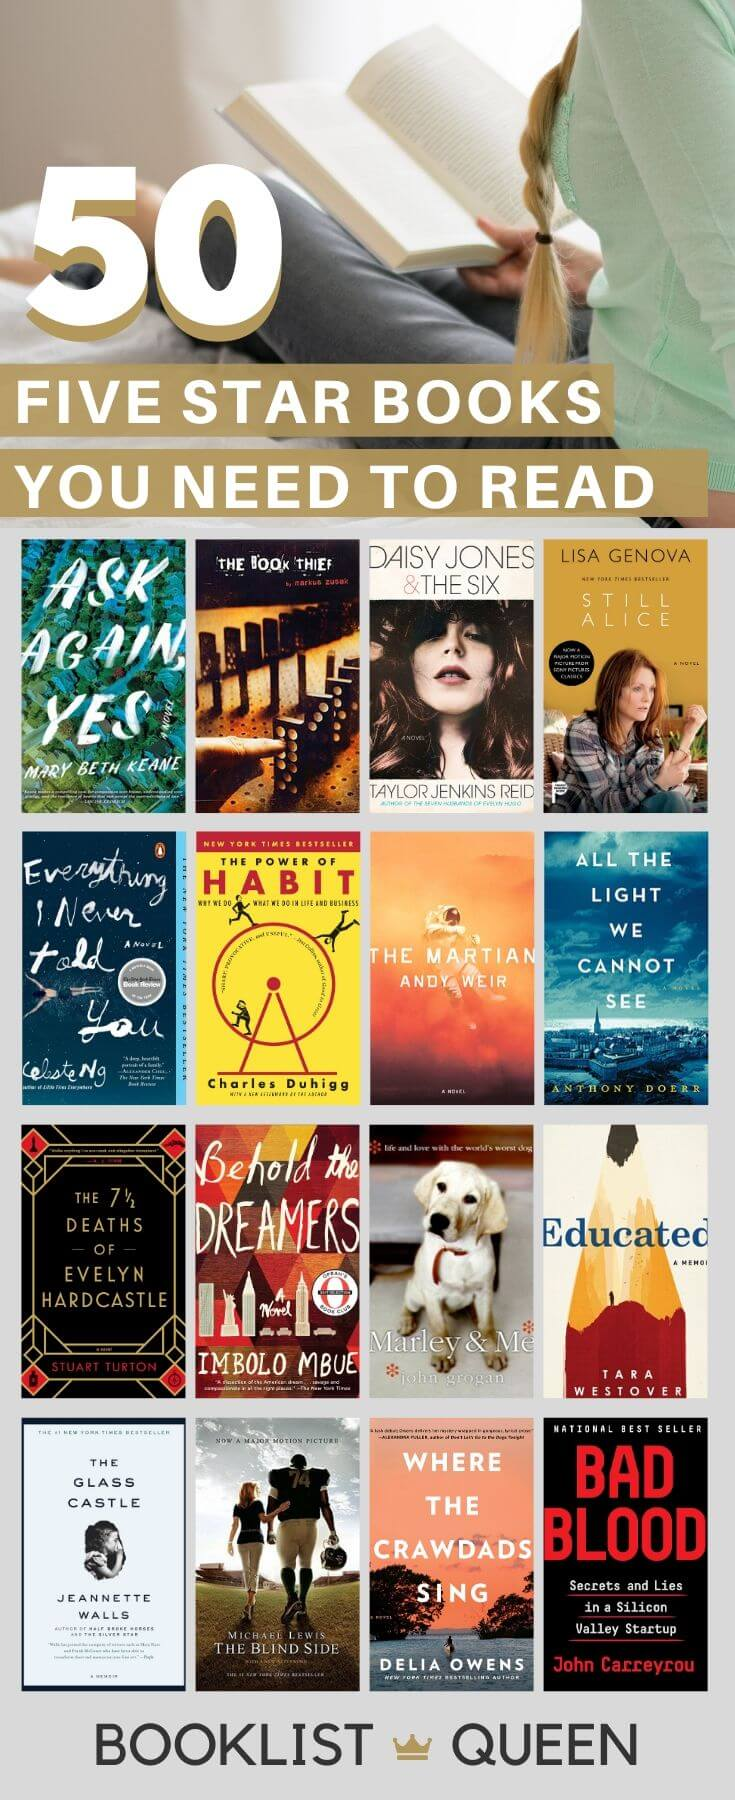 50 Five Star Books You Need to Read